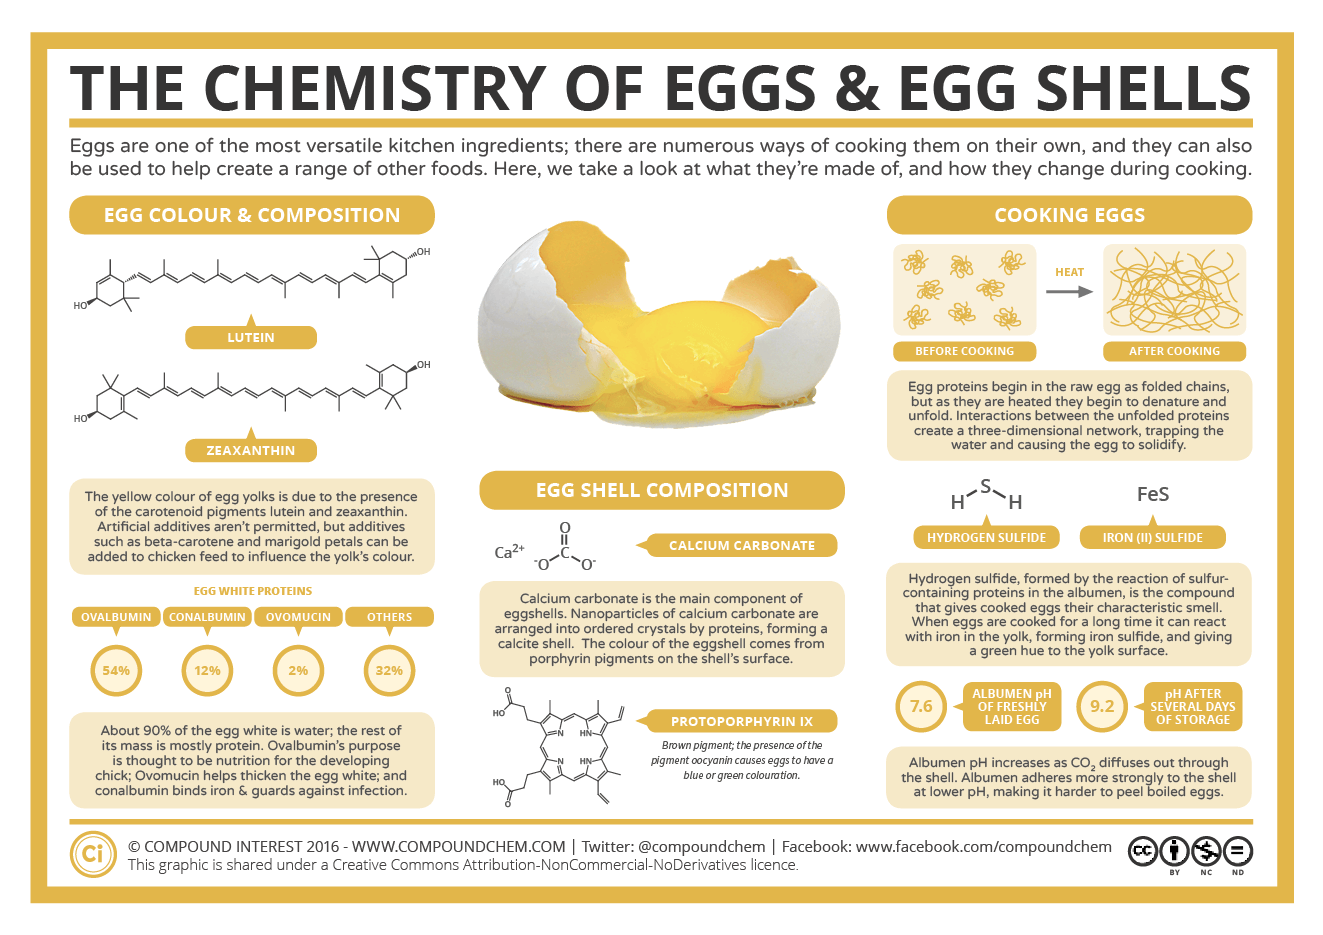 Compound interest the chemistry of eggs egg shells the chemistry of eggs egg shells pooptronica